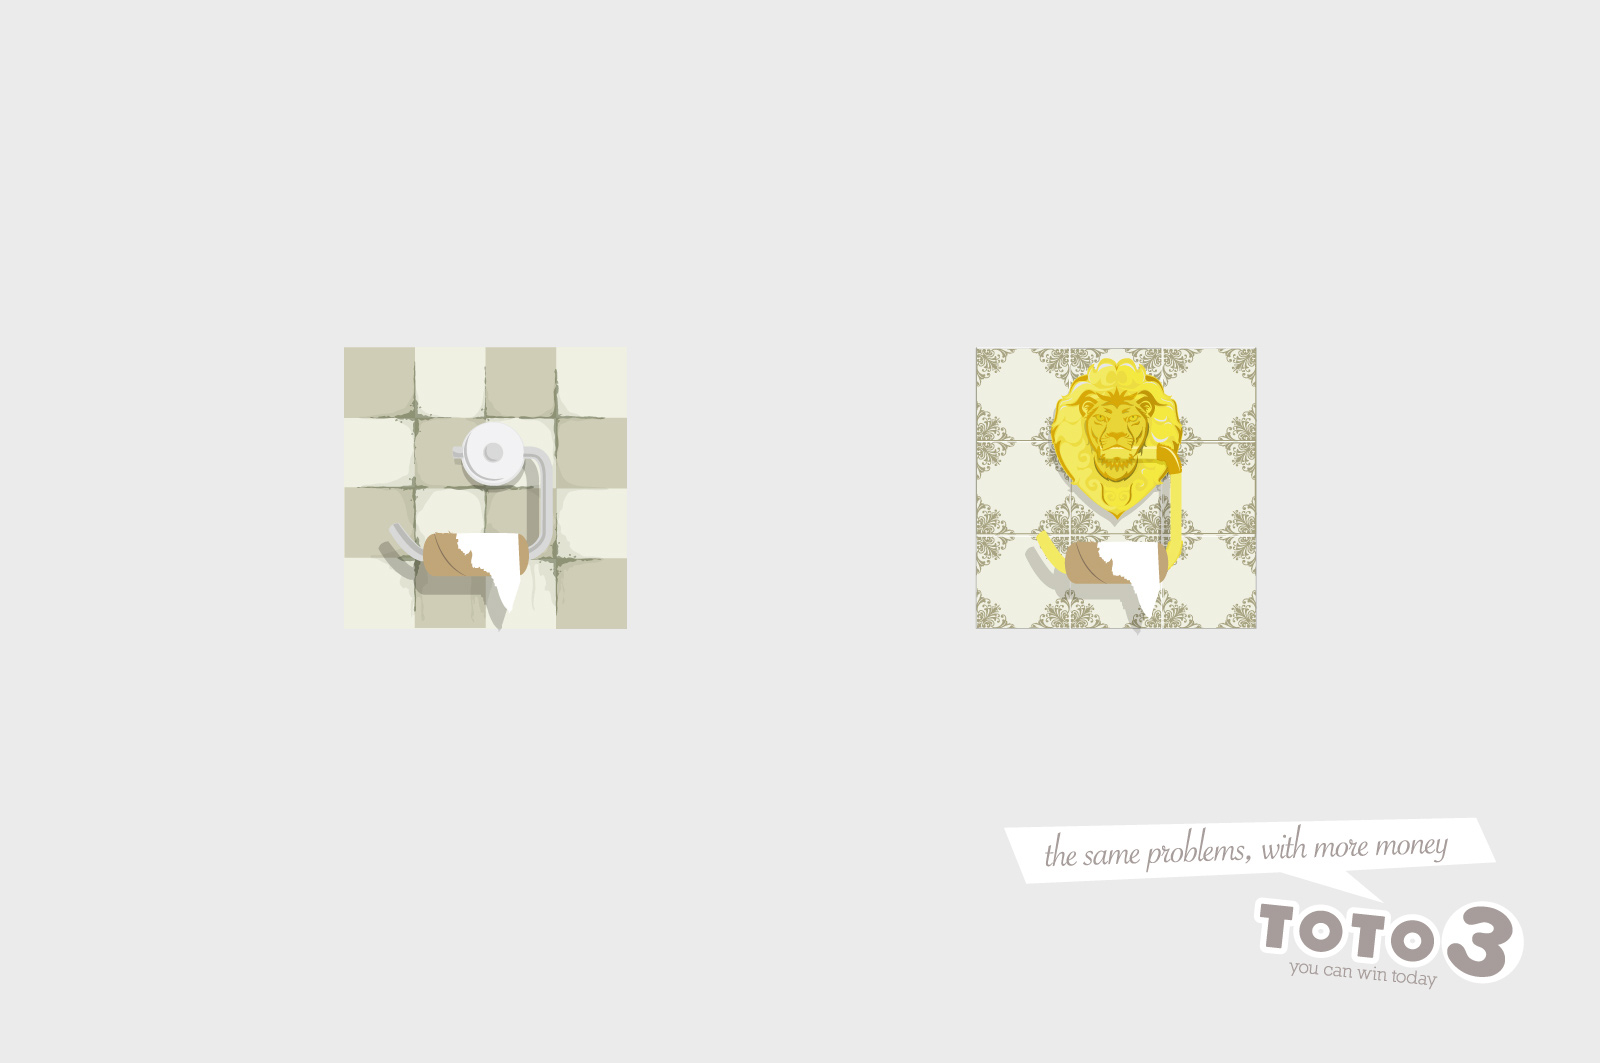 Toto 3 Print Advert By Grey: Toilet | Ads of the World™